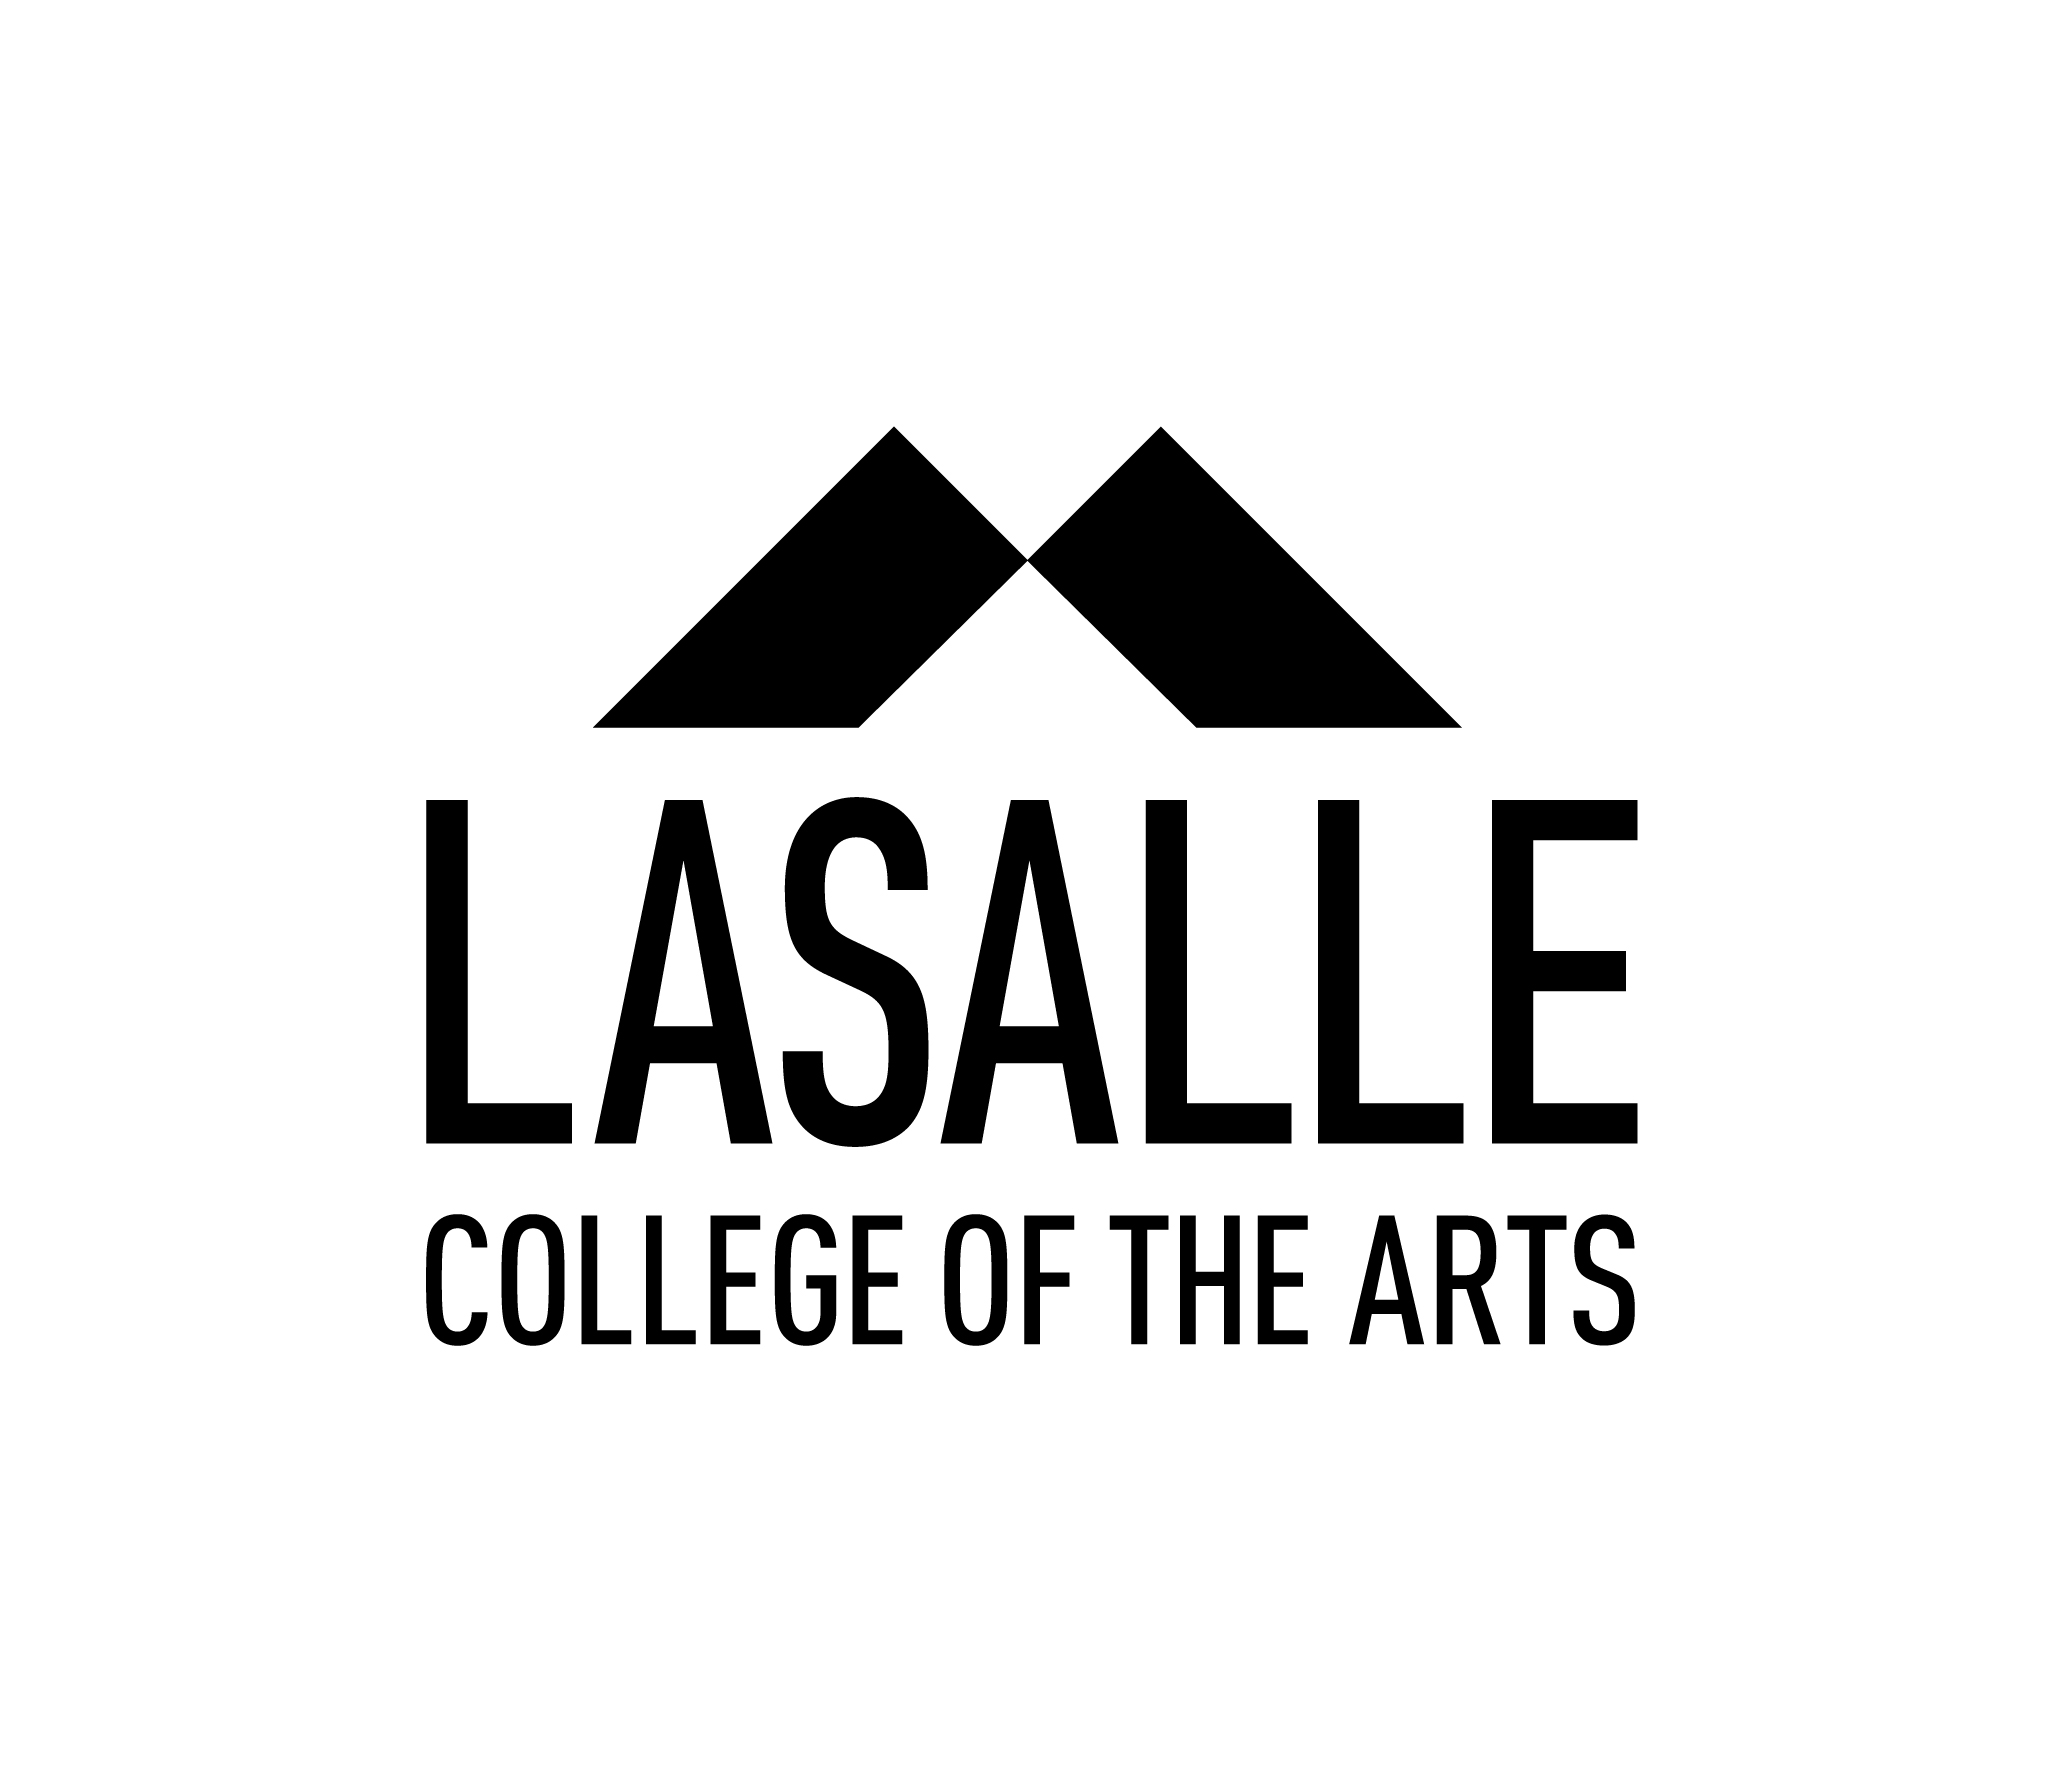 More about Lasalle College Of The Arts